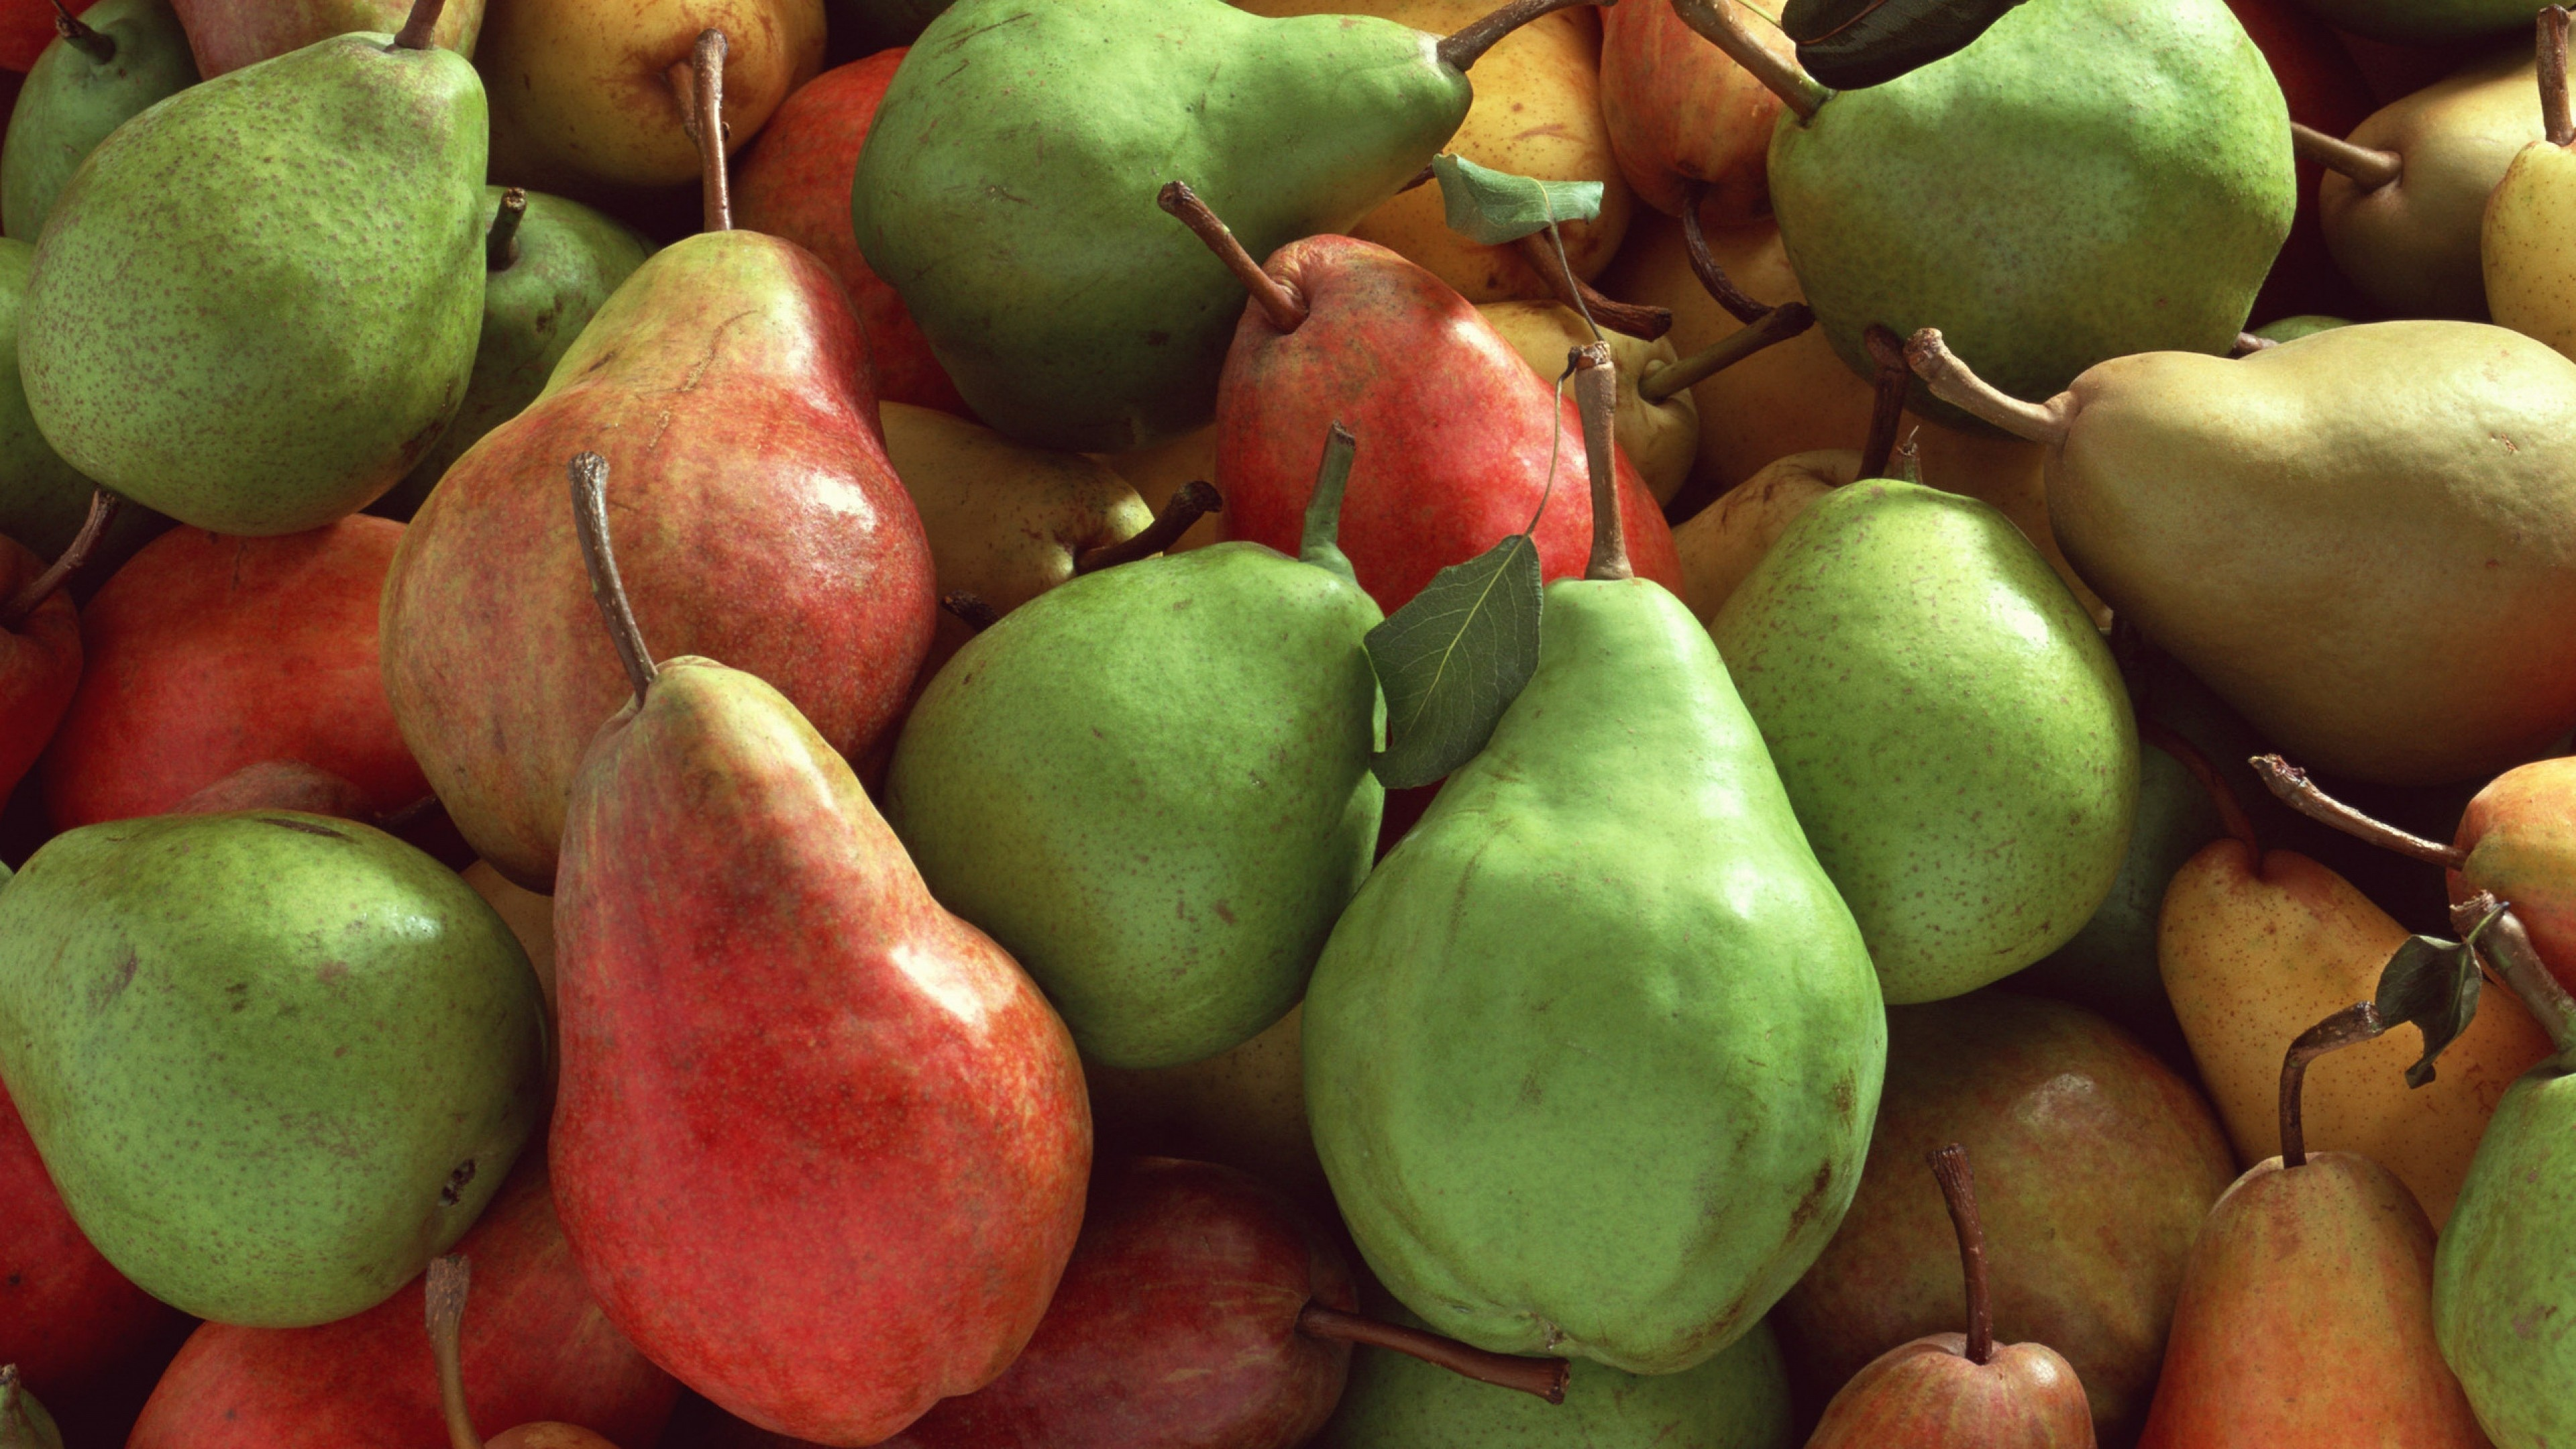 Res: 3840x2160, 10 HD Pears Fruit Wallpapers